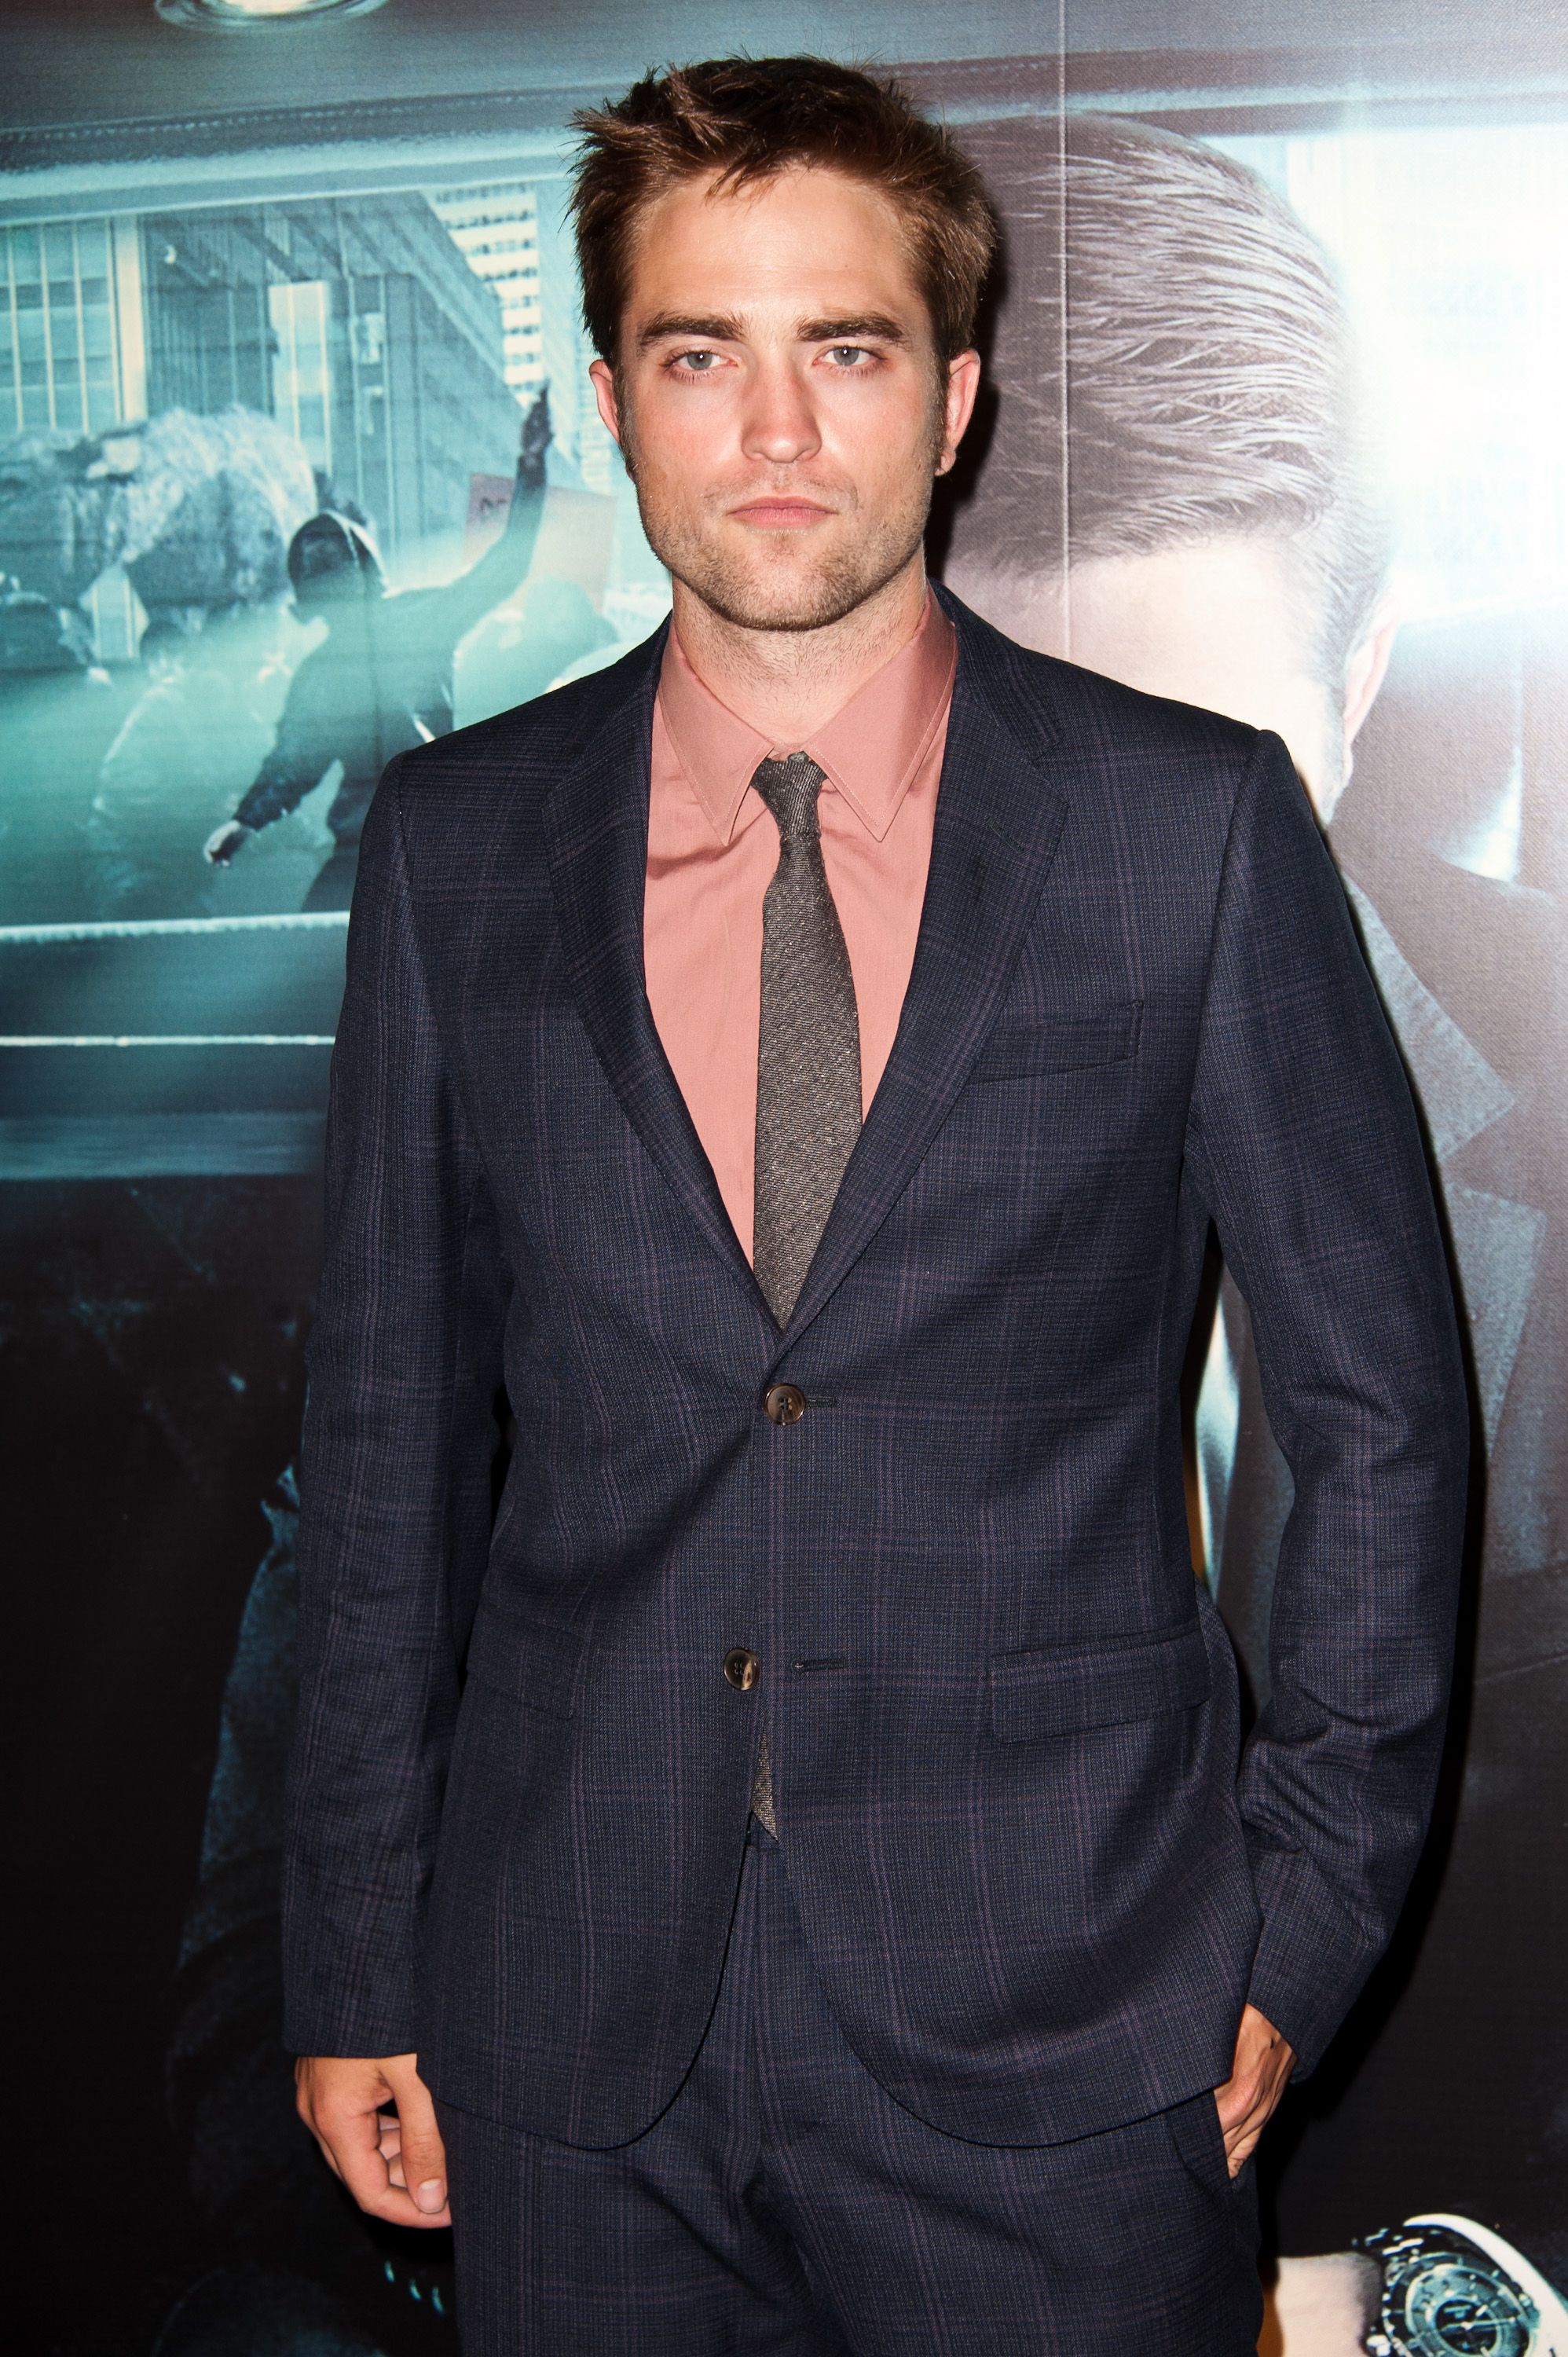 Robert Pattinson Returns to France For Cosmopolis | Carpets, Navy ...